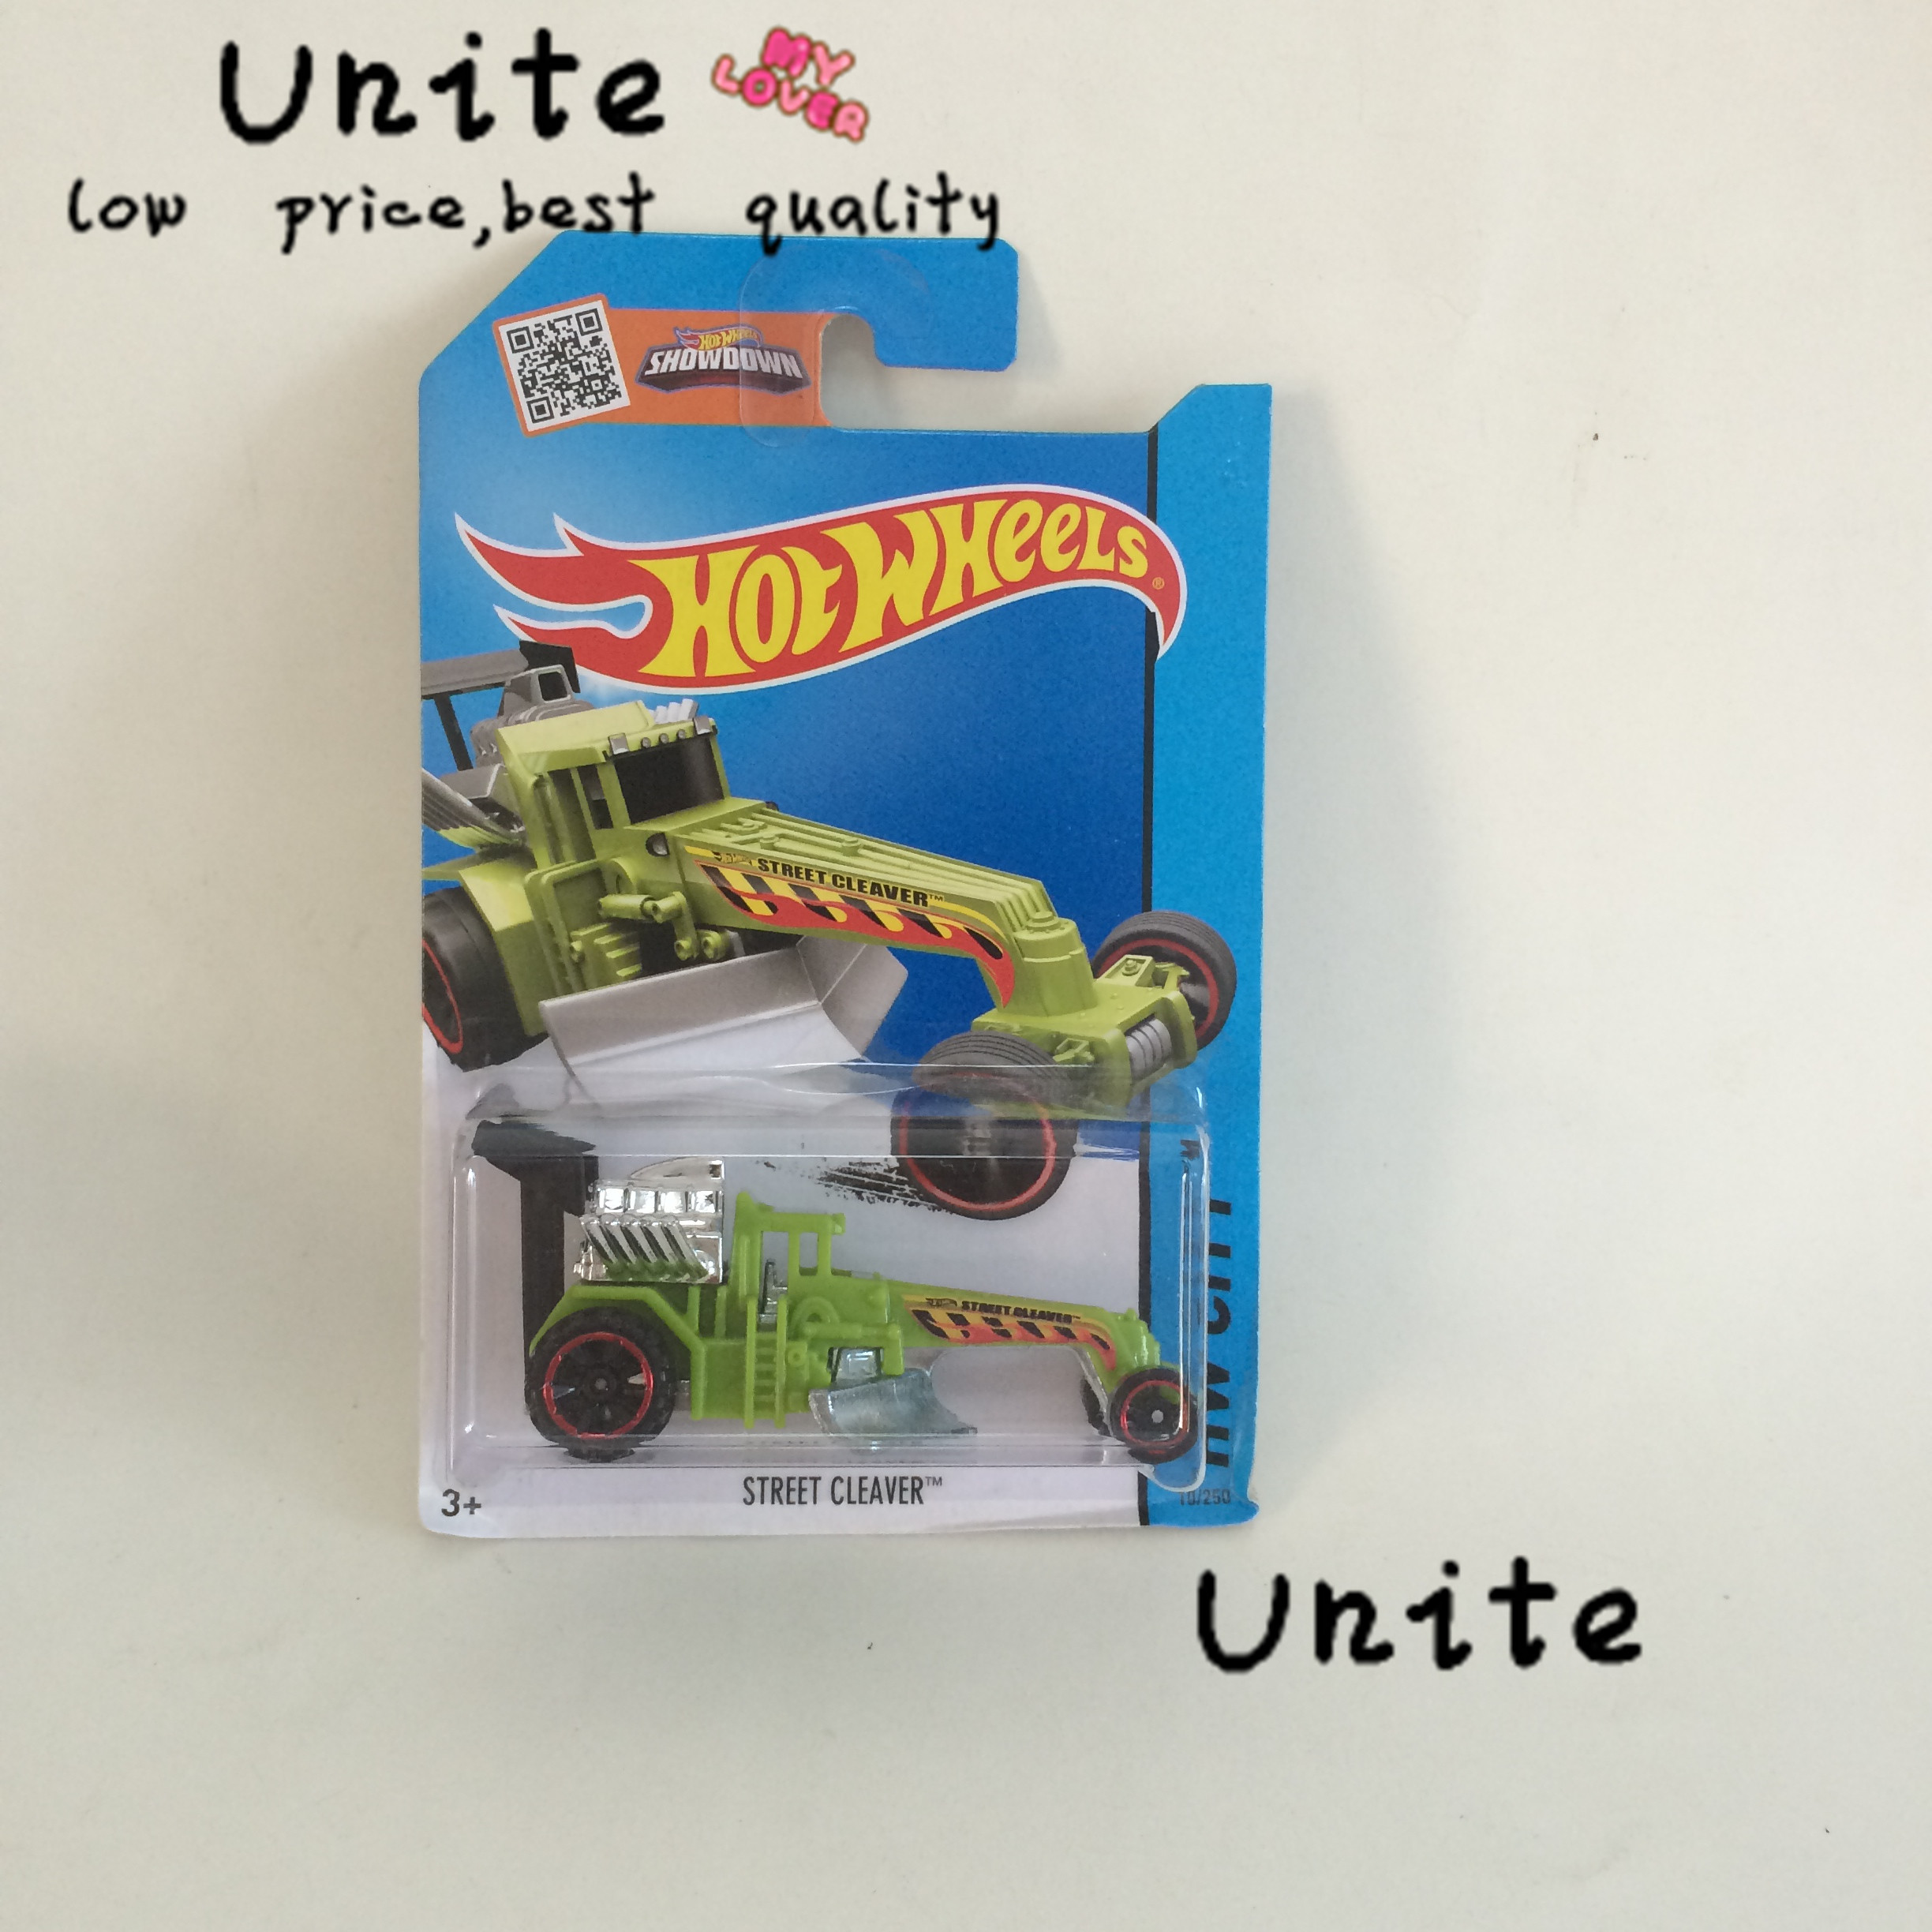 Free Shipping Street Cleaver green Alloy Cars Models Special Type Wholesale Metal Mini Cars For Collector Hot Wheels Shark 1:144(China (Mainland))